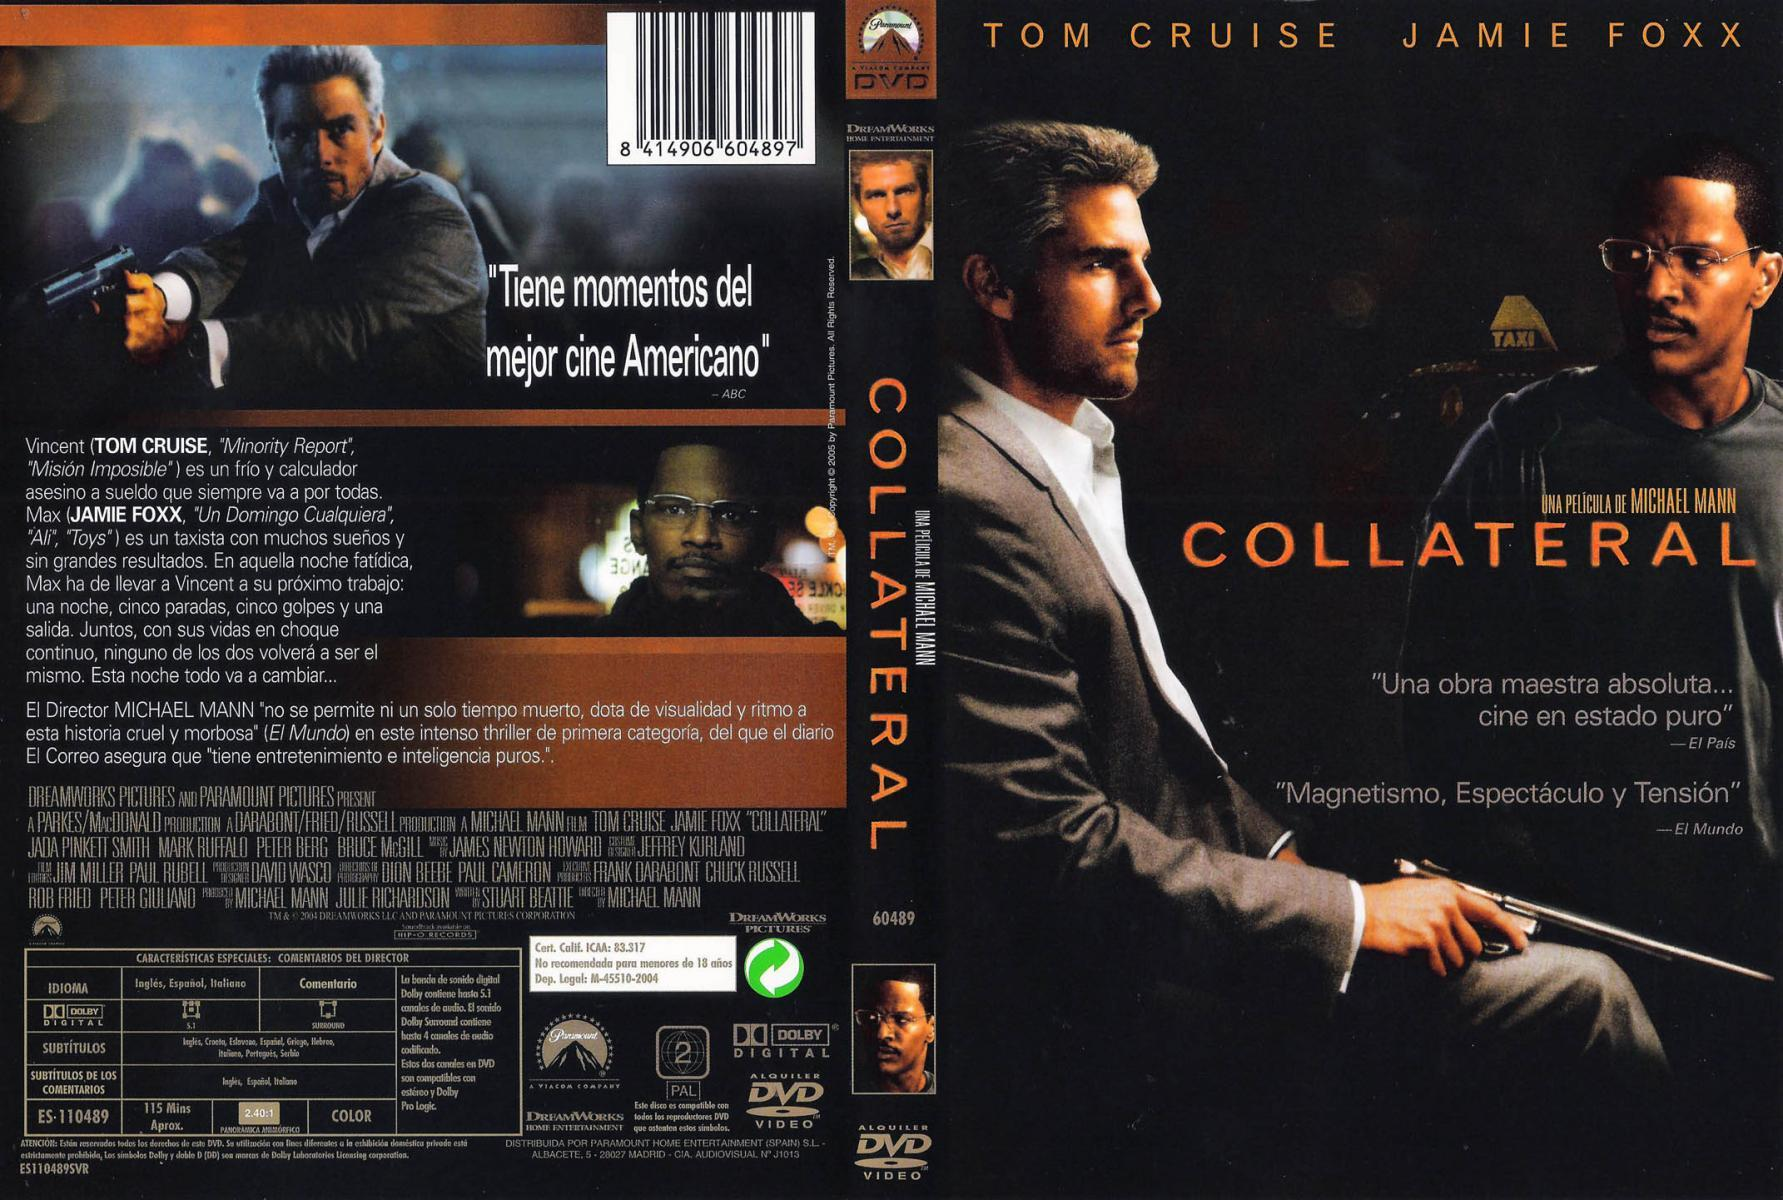 Collateral (2004) - Filmaffinity